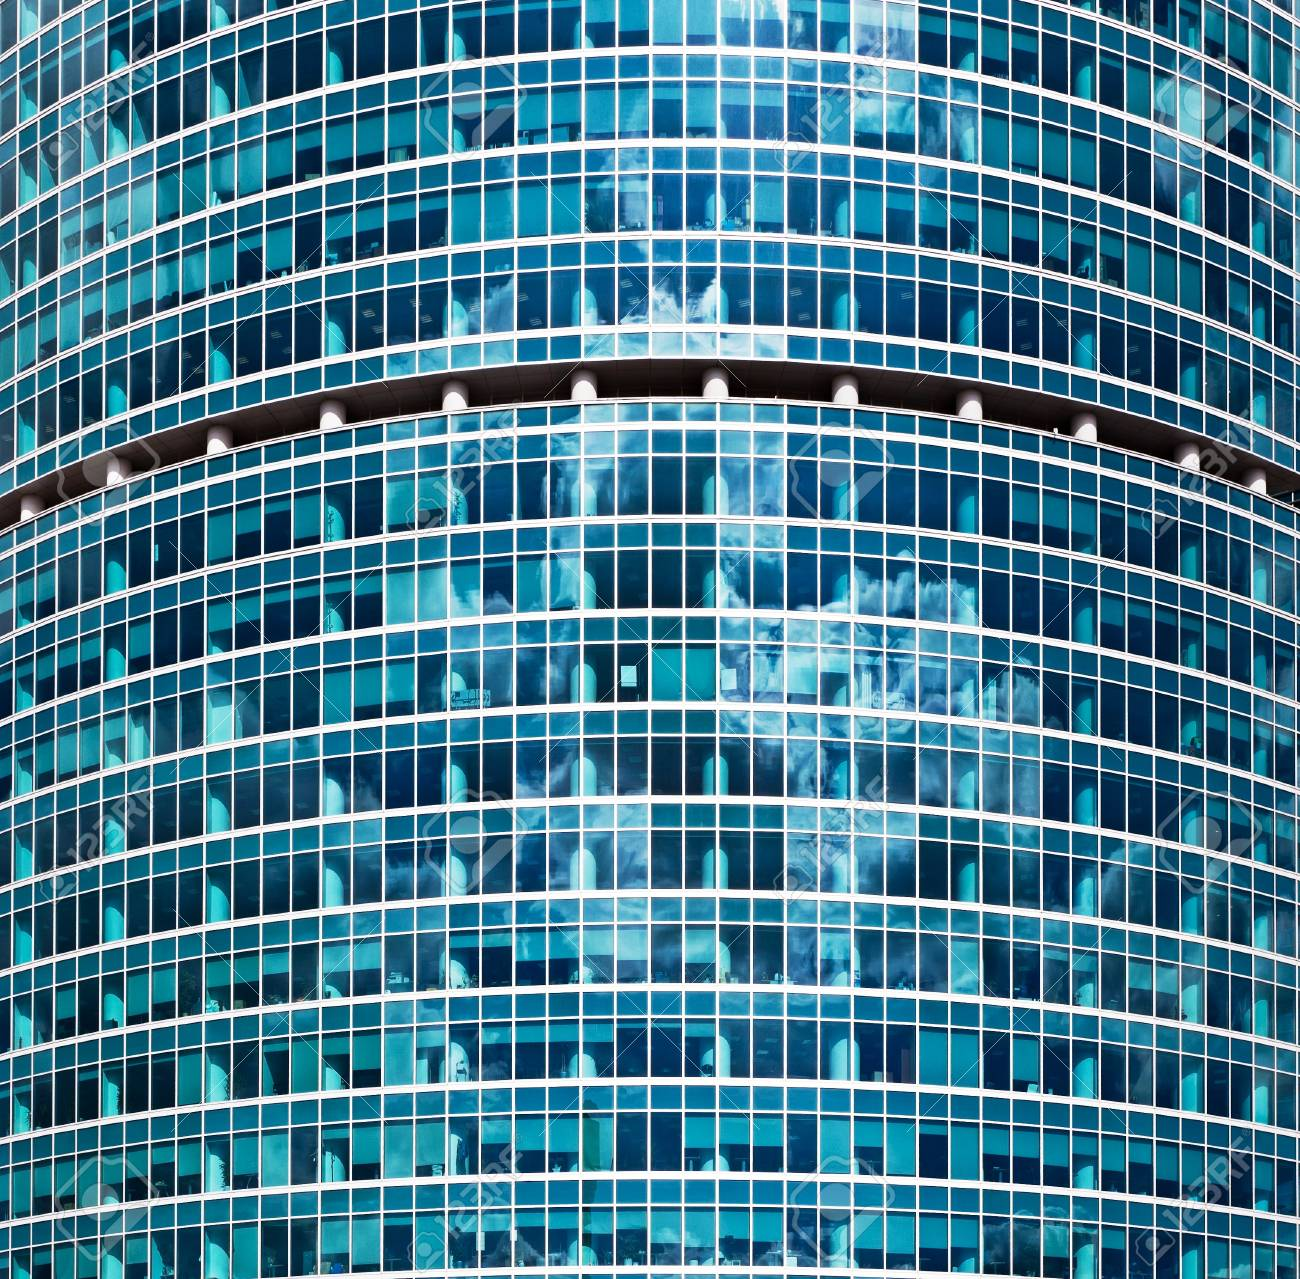 glass wall of the office building - 9280444